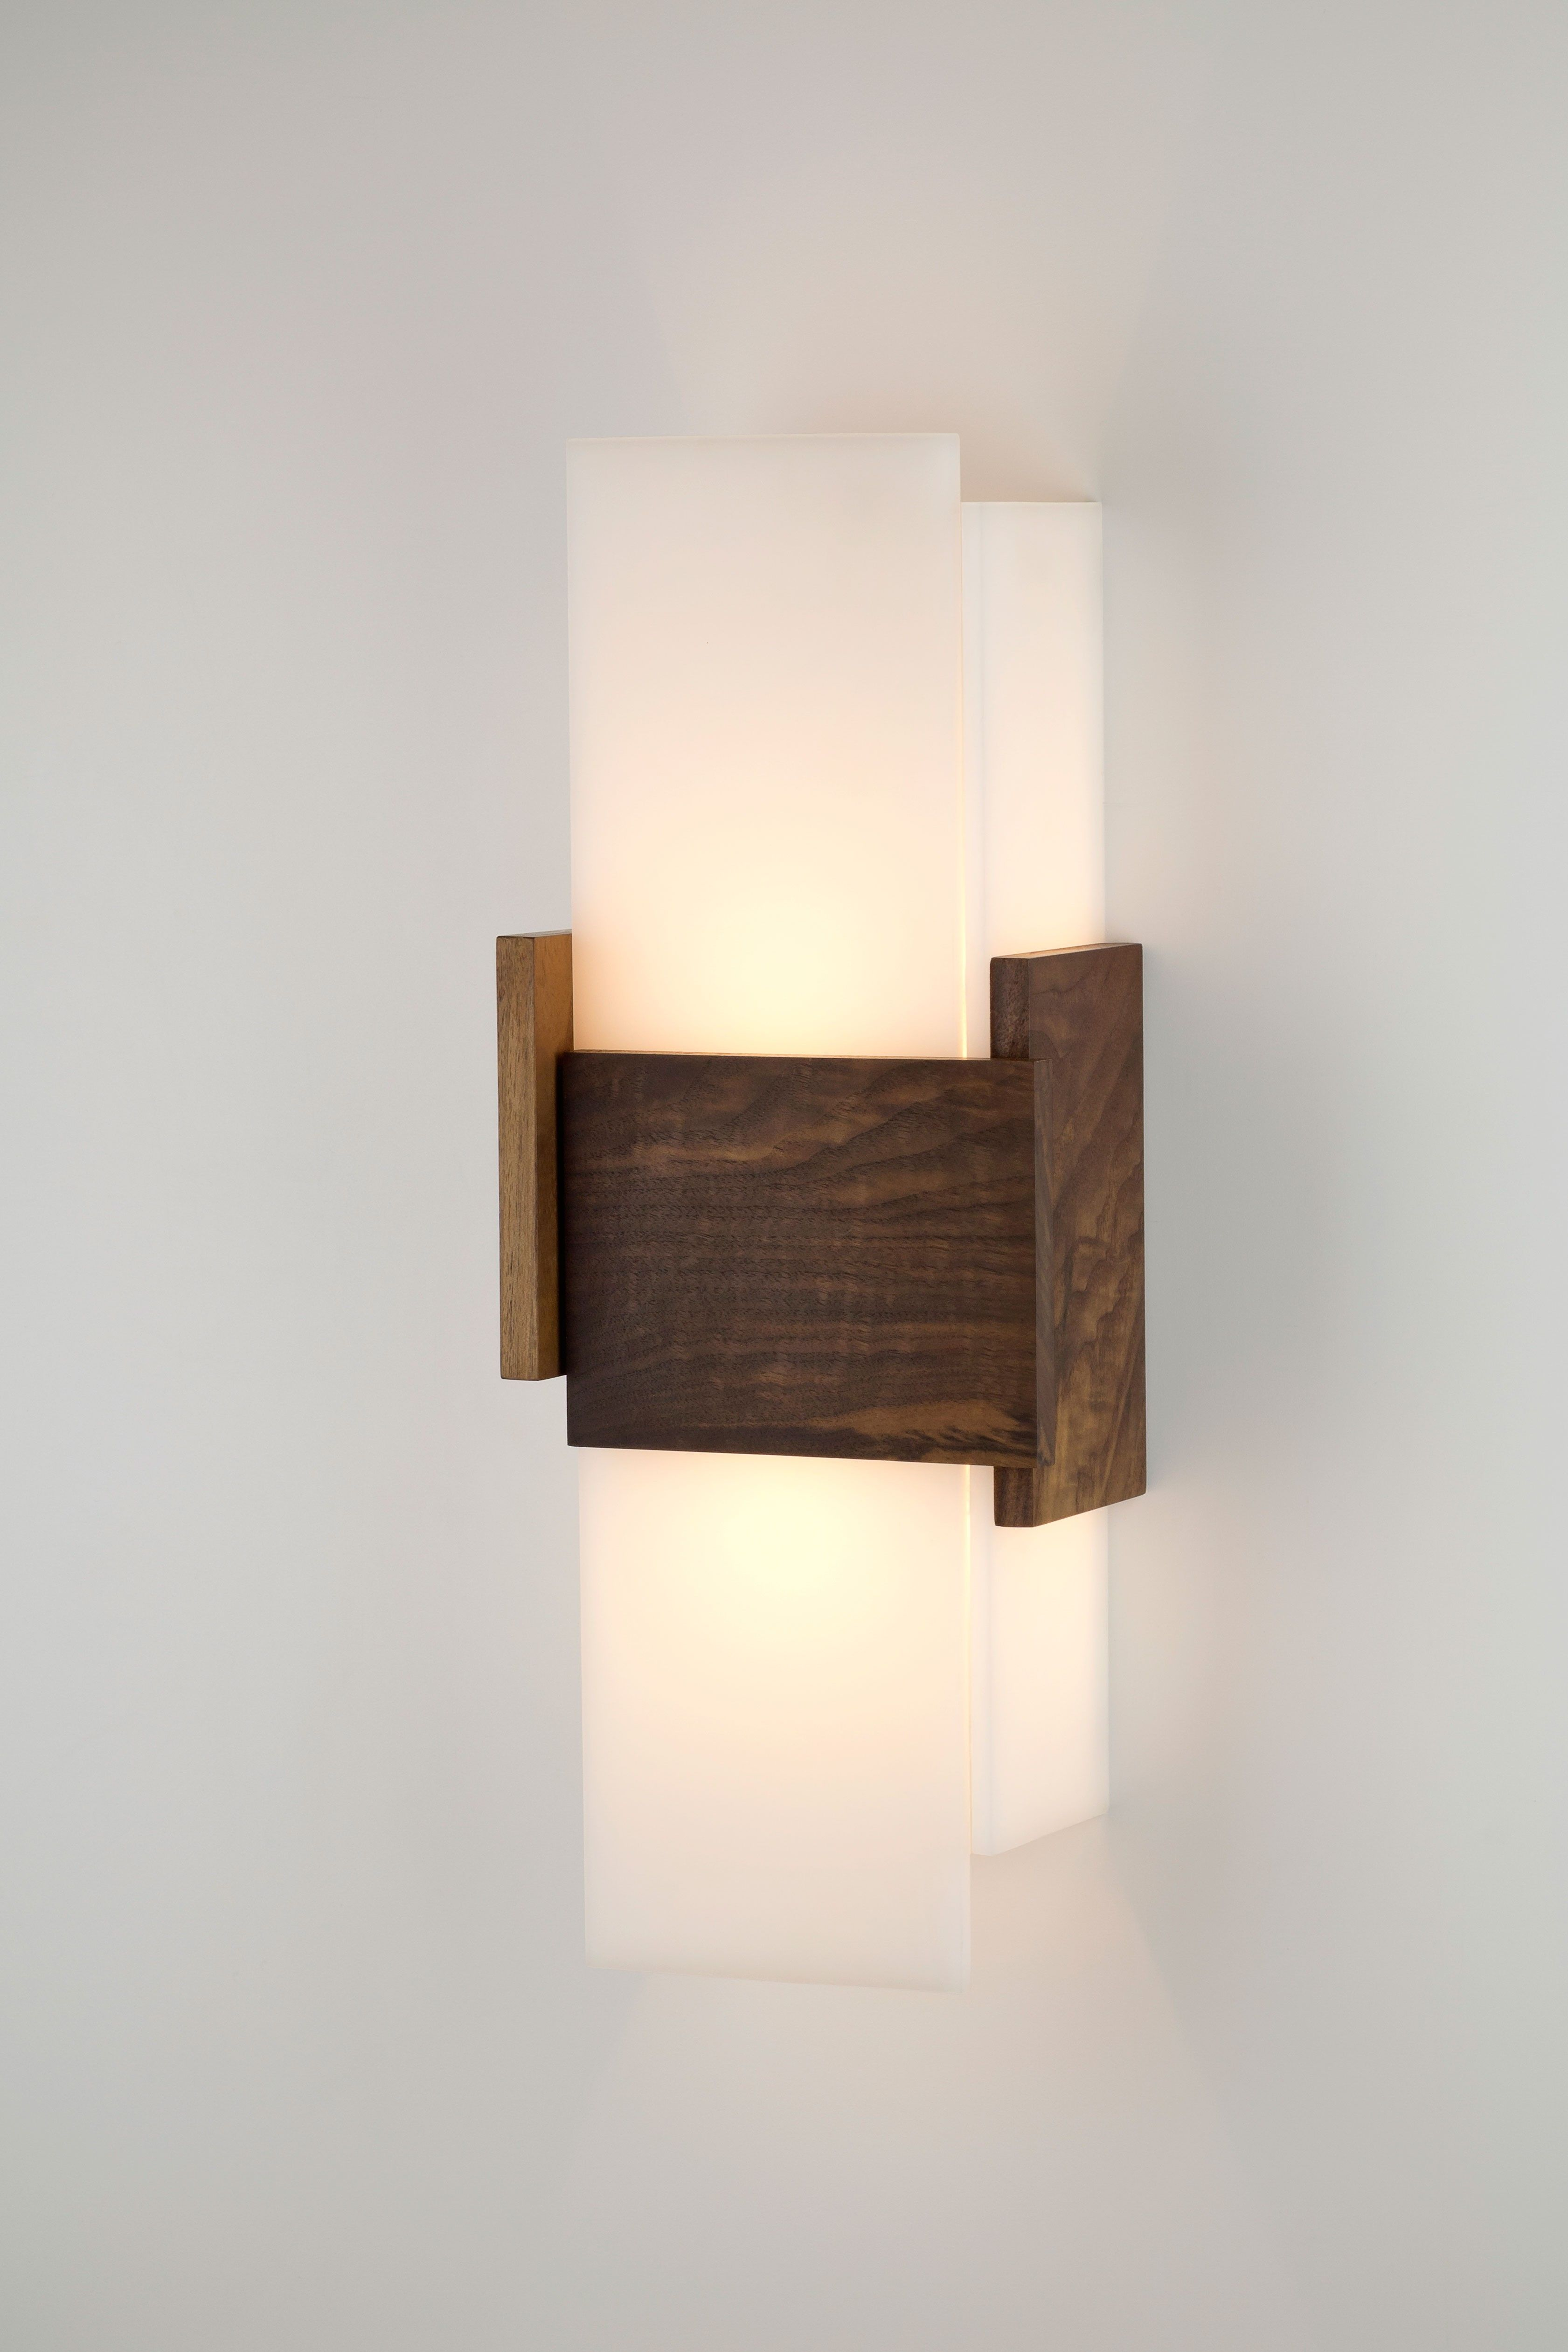 Modestics Acuo Sconce Lamp By Cerno Group Made In The